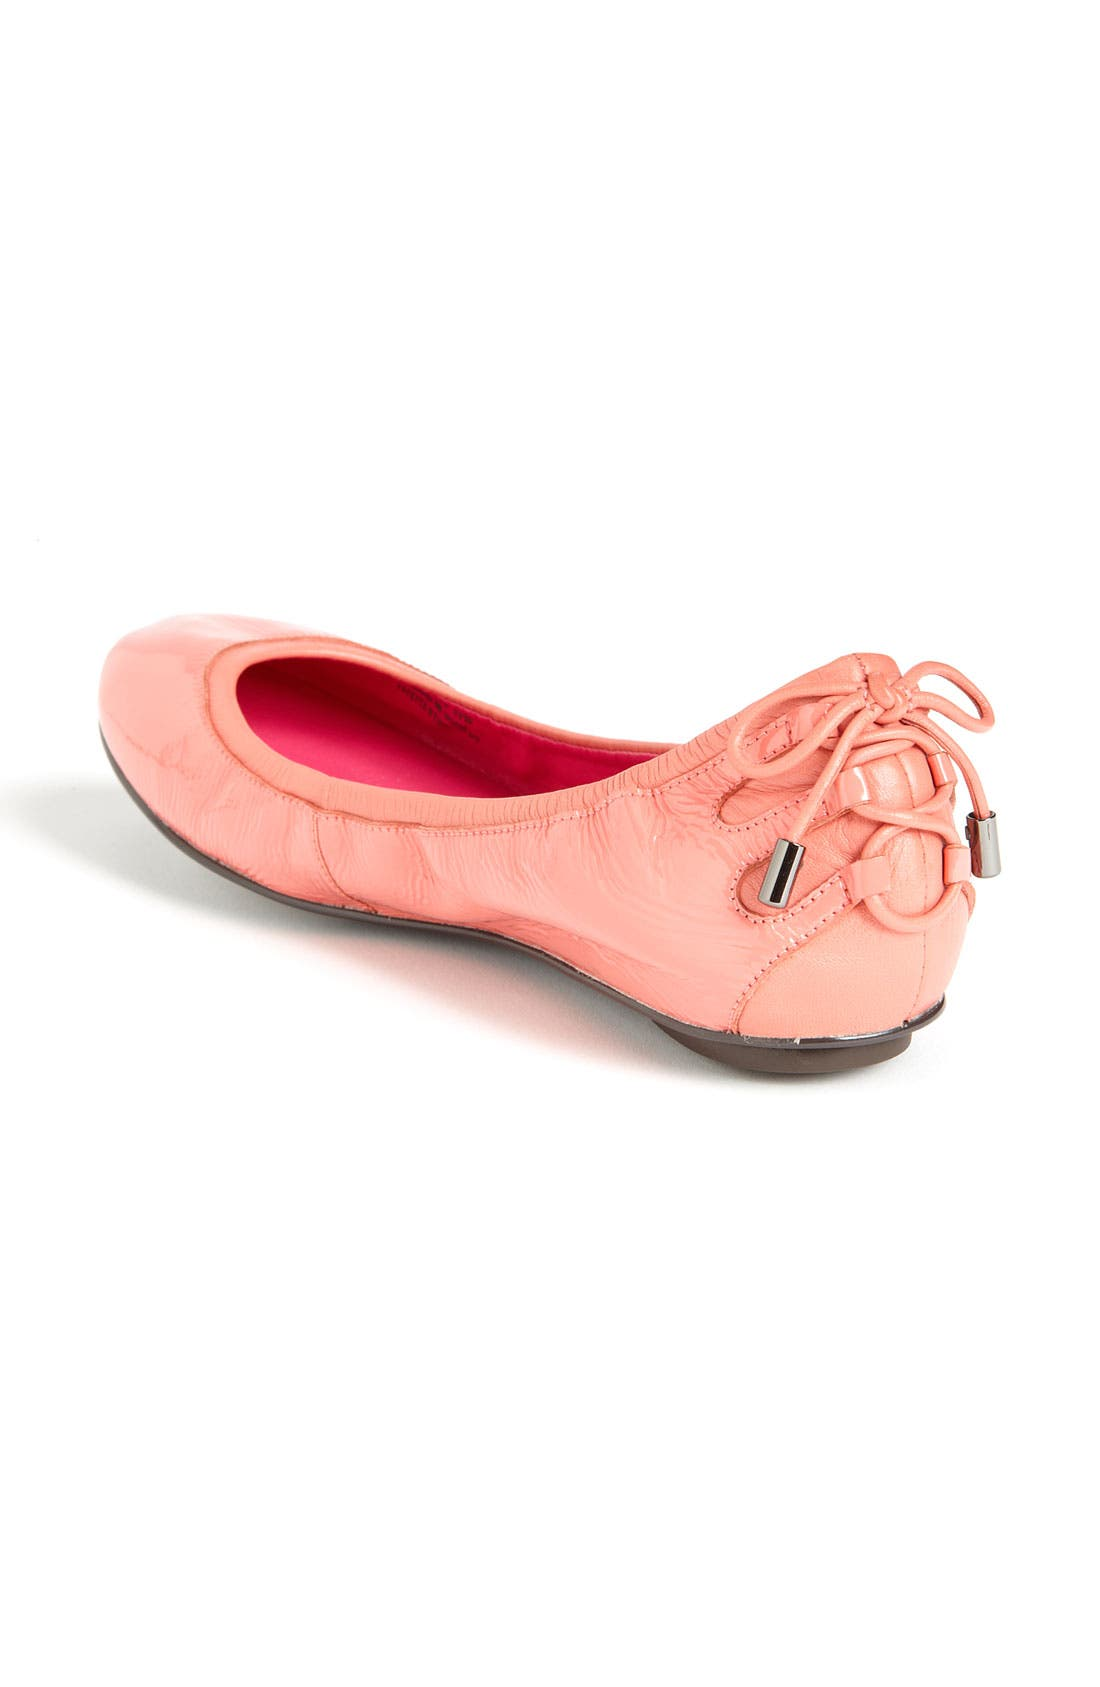 ,                             Maria Sharapova by Cole Haan 'Air Bacara' Flat,                             Alternate thumbnail 110, color,                             950